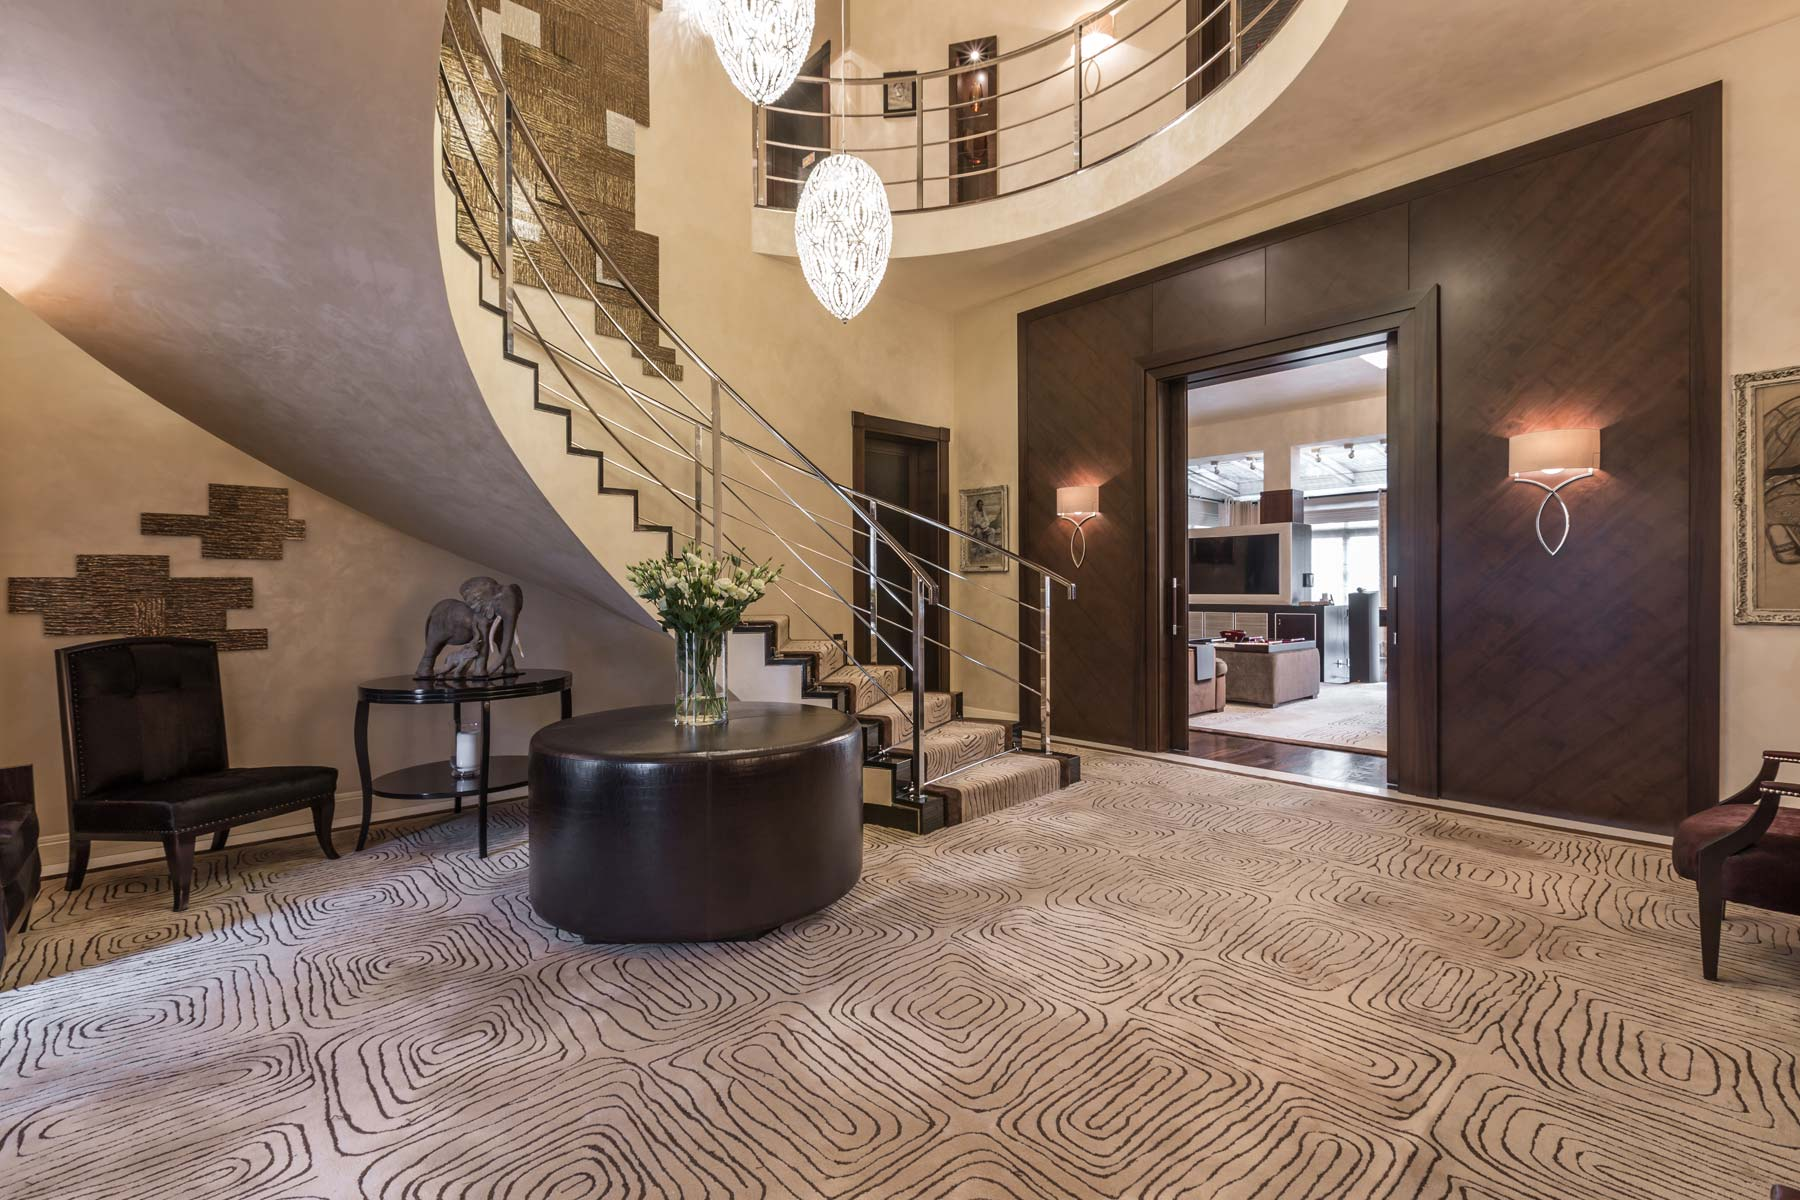 Entrance hall with sweeping staircase Warsaw